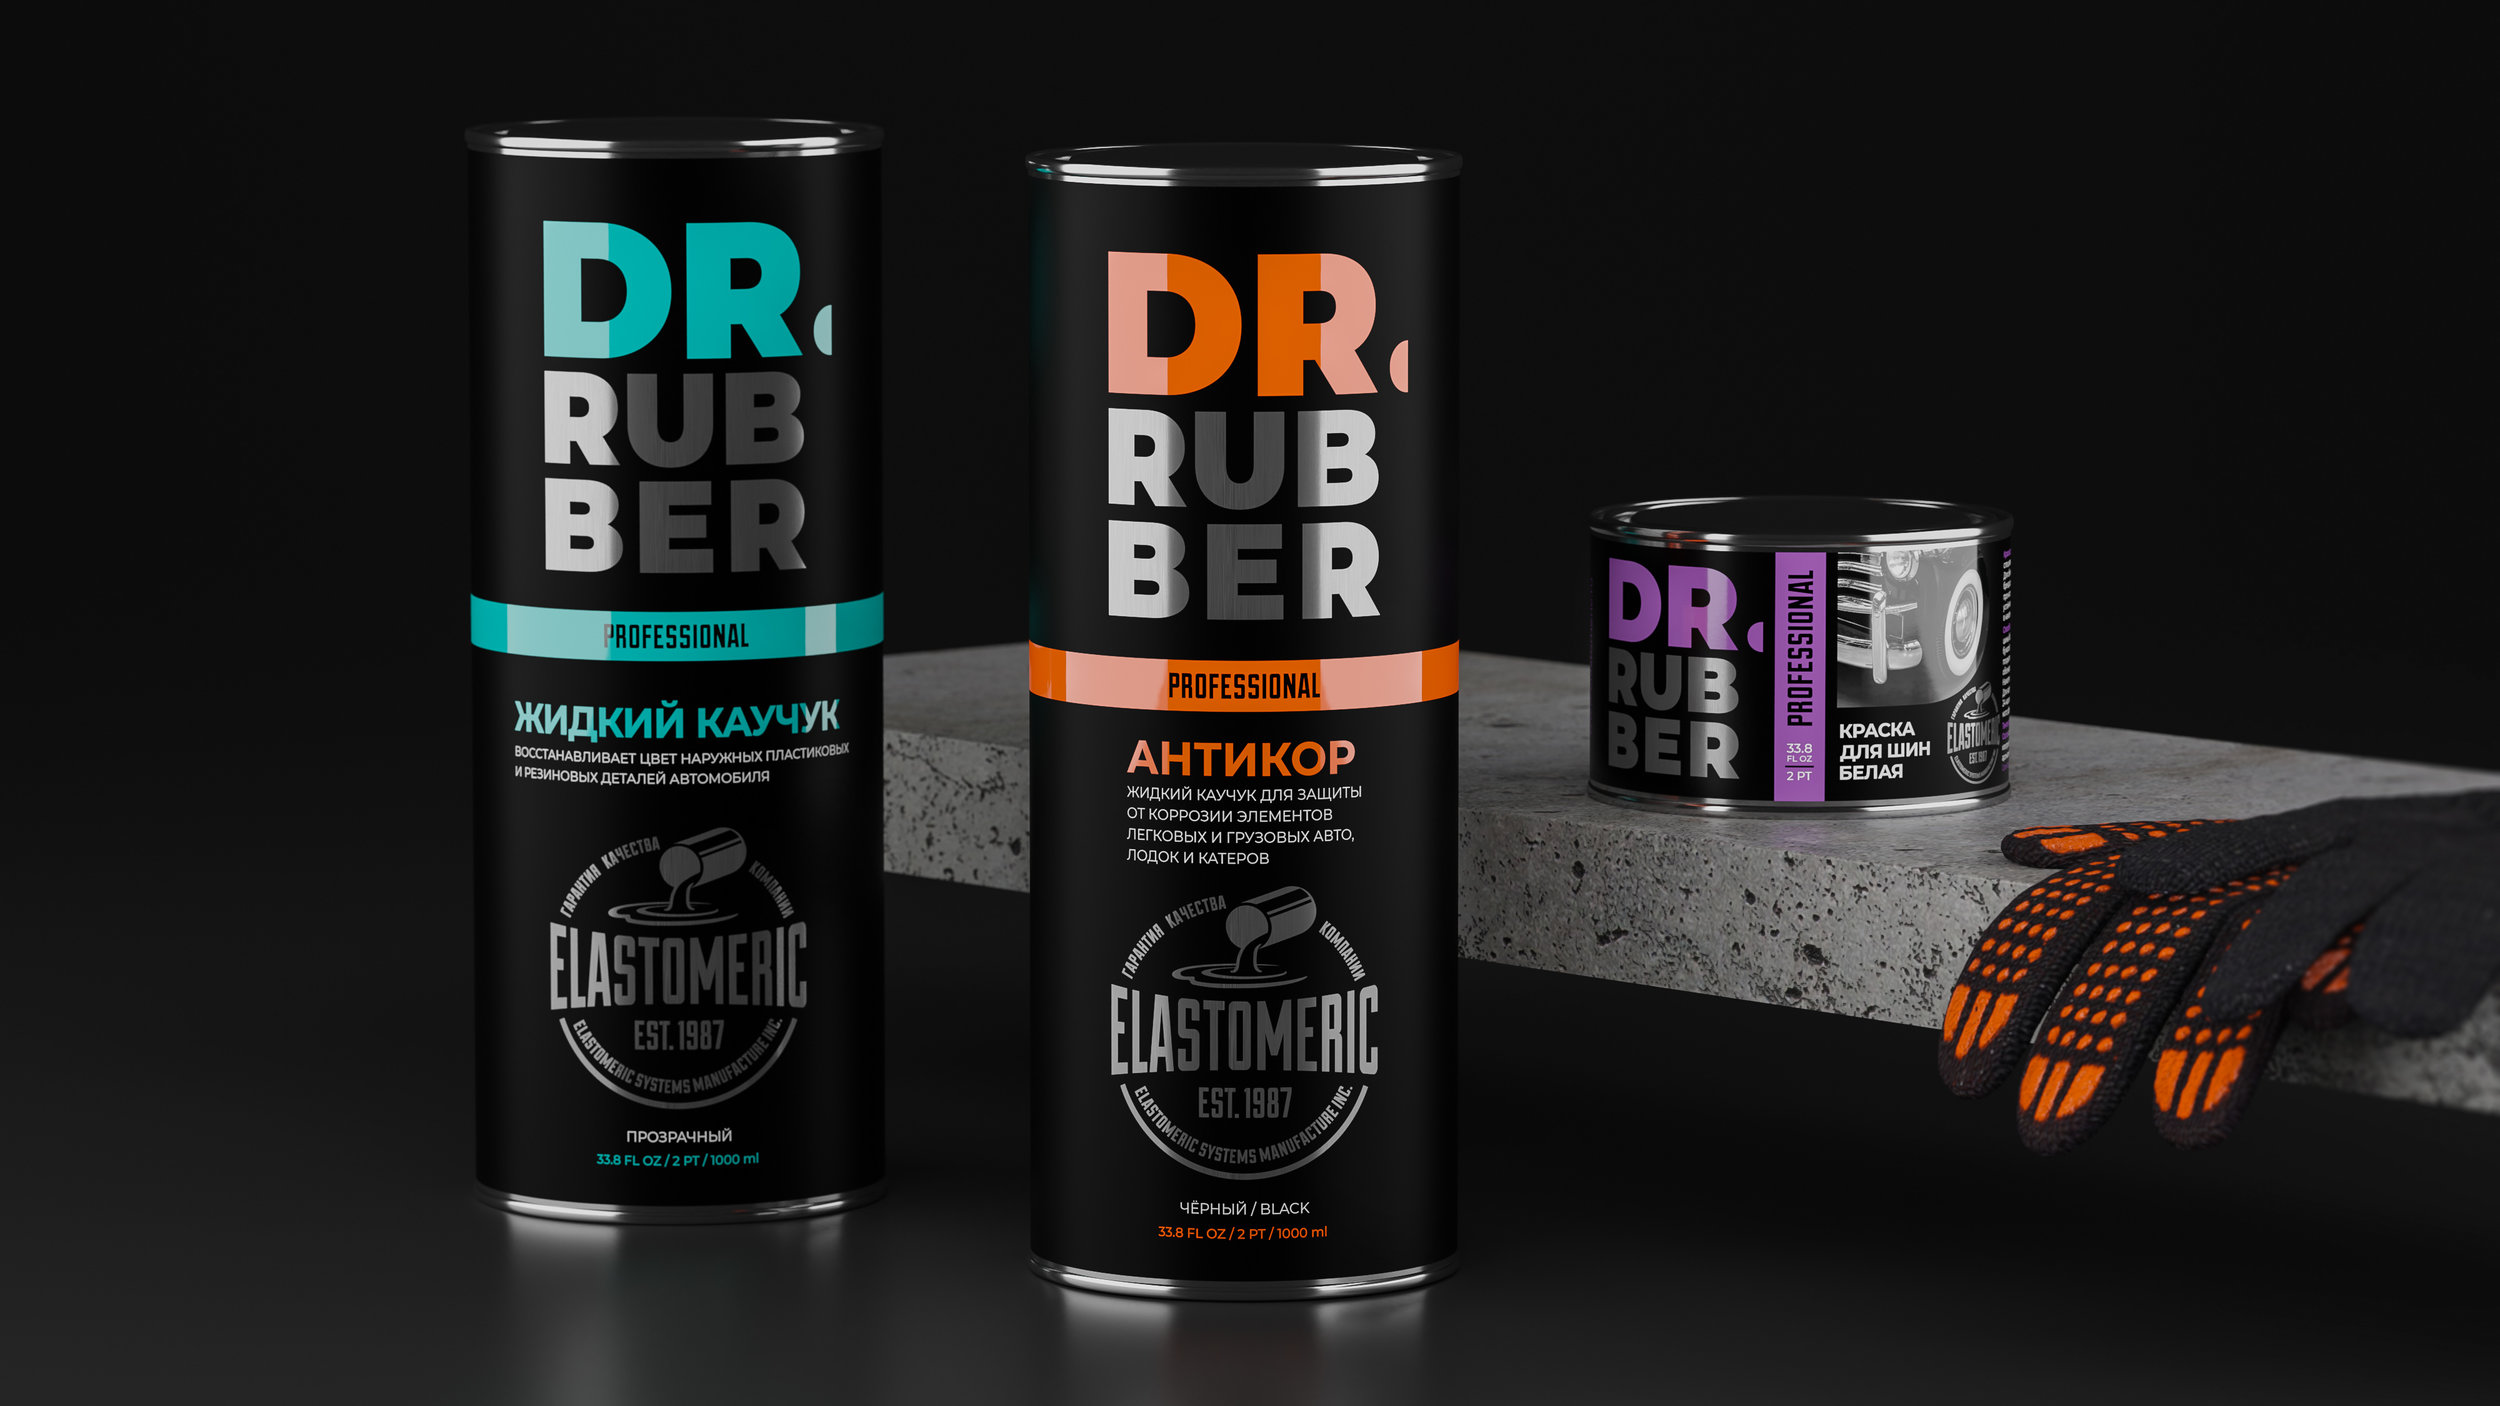 Branding of Dr. Rubber By CUBA Creative Branding Studio For Elastomeric Systems